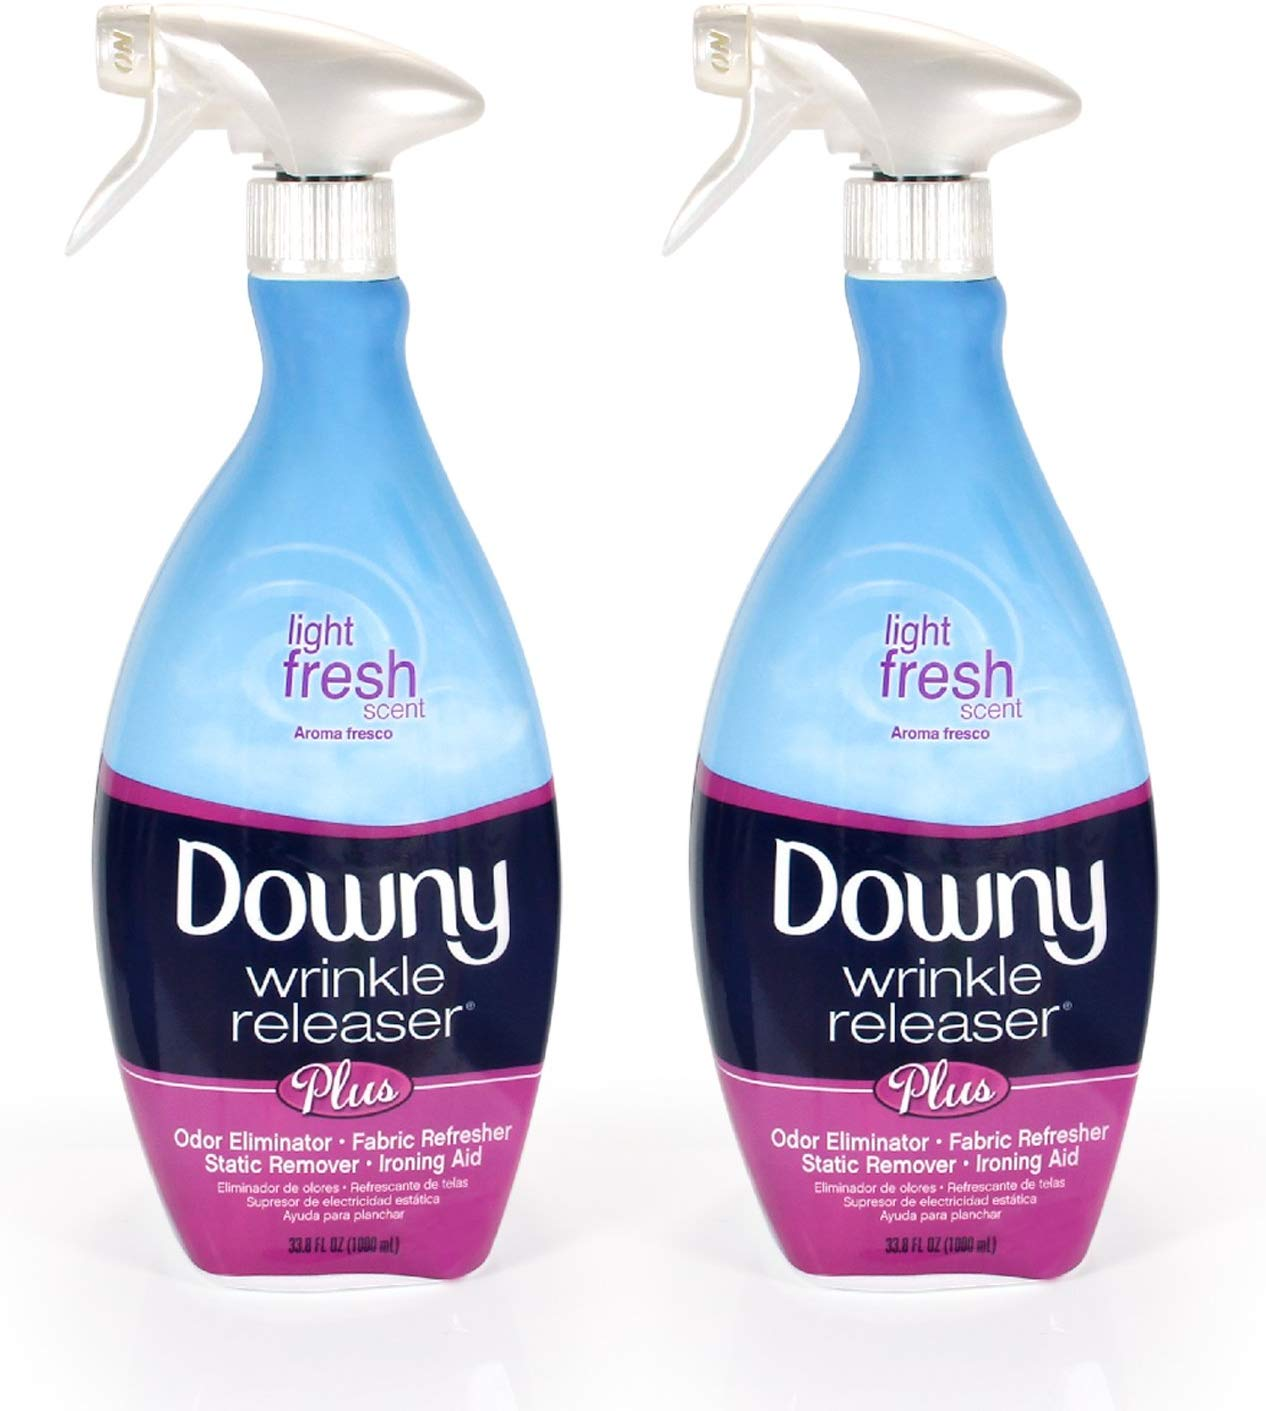 Downy wrinkle release is a time-saving product